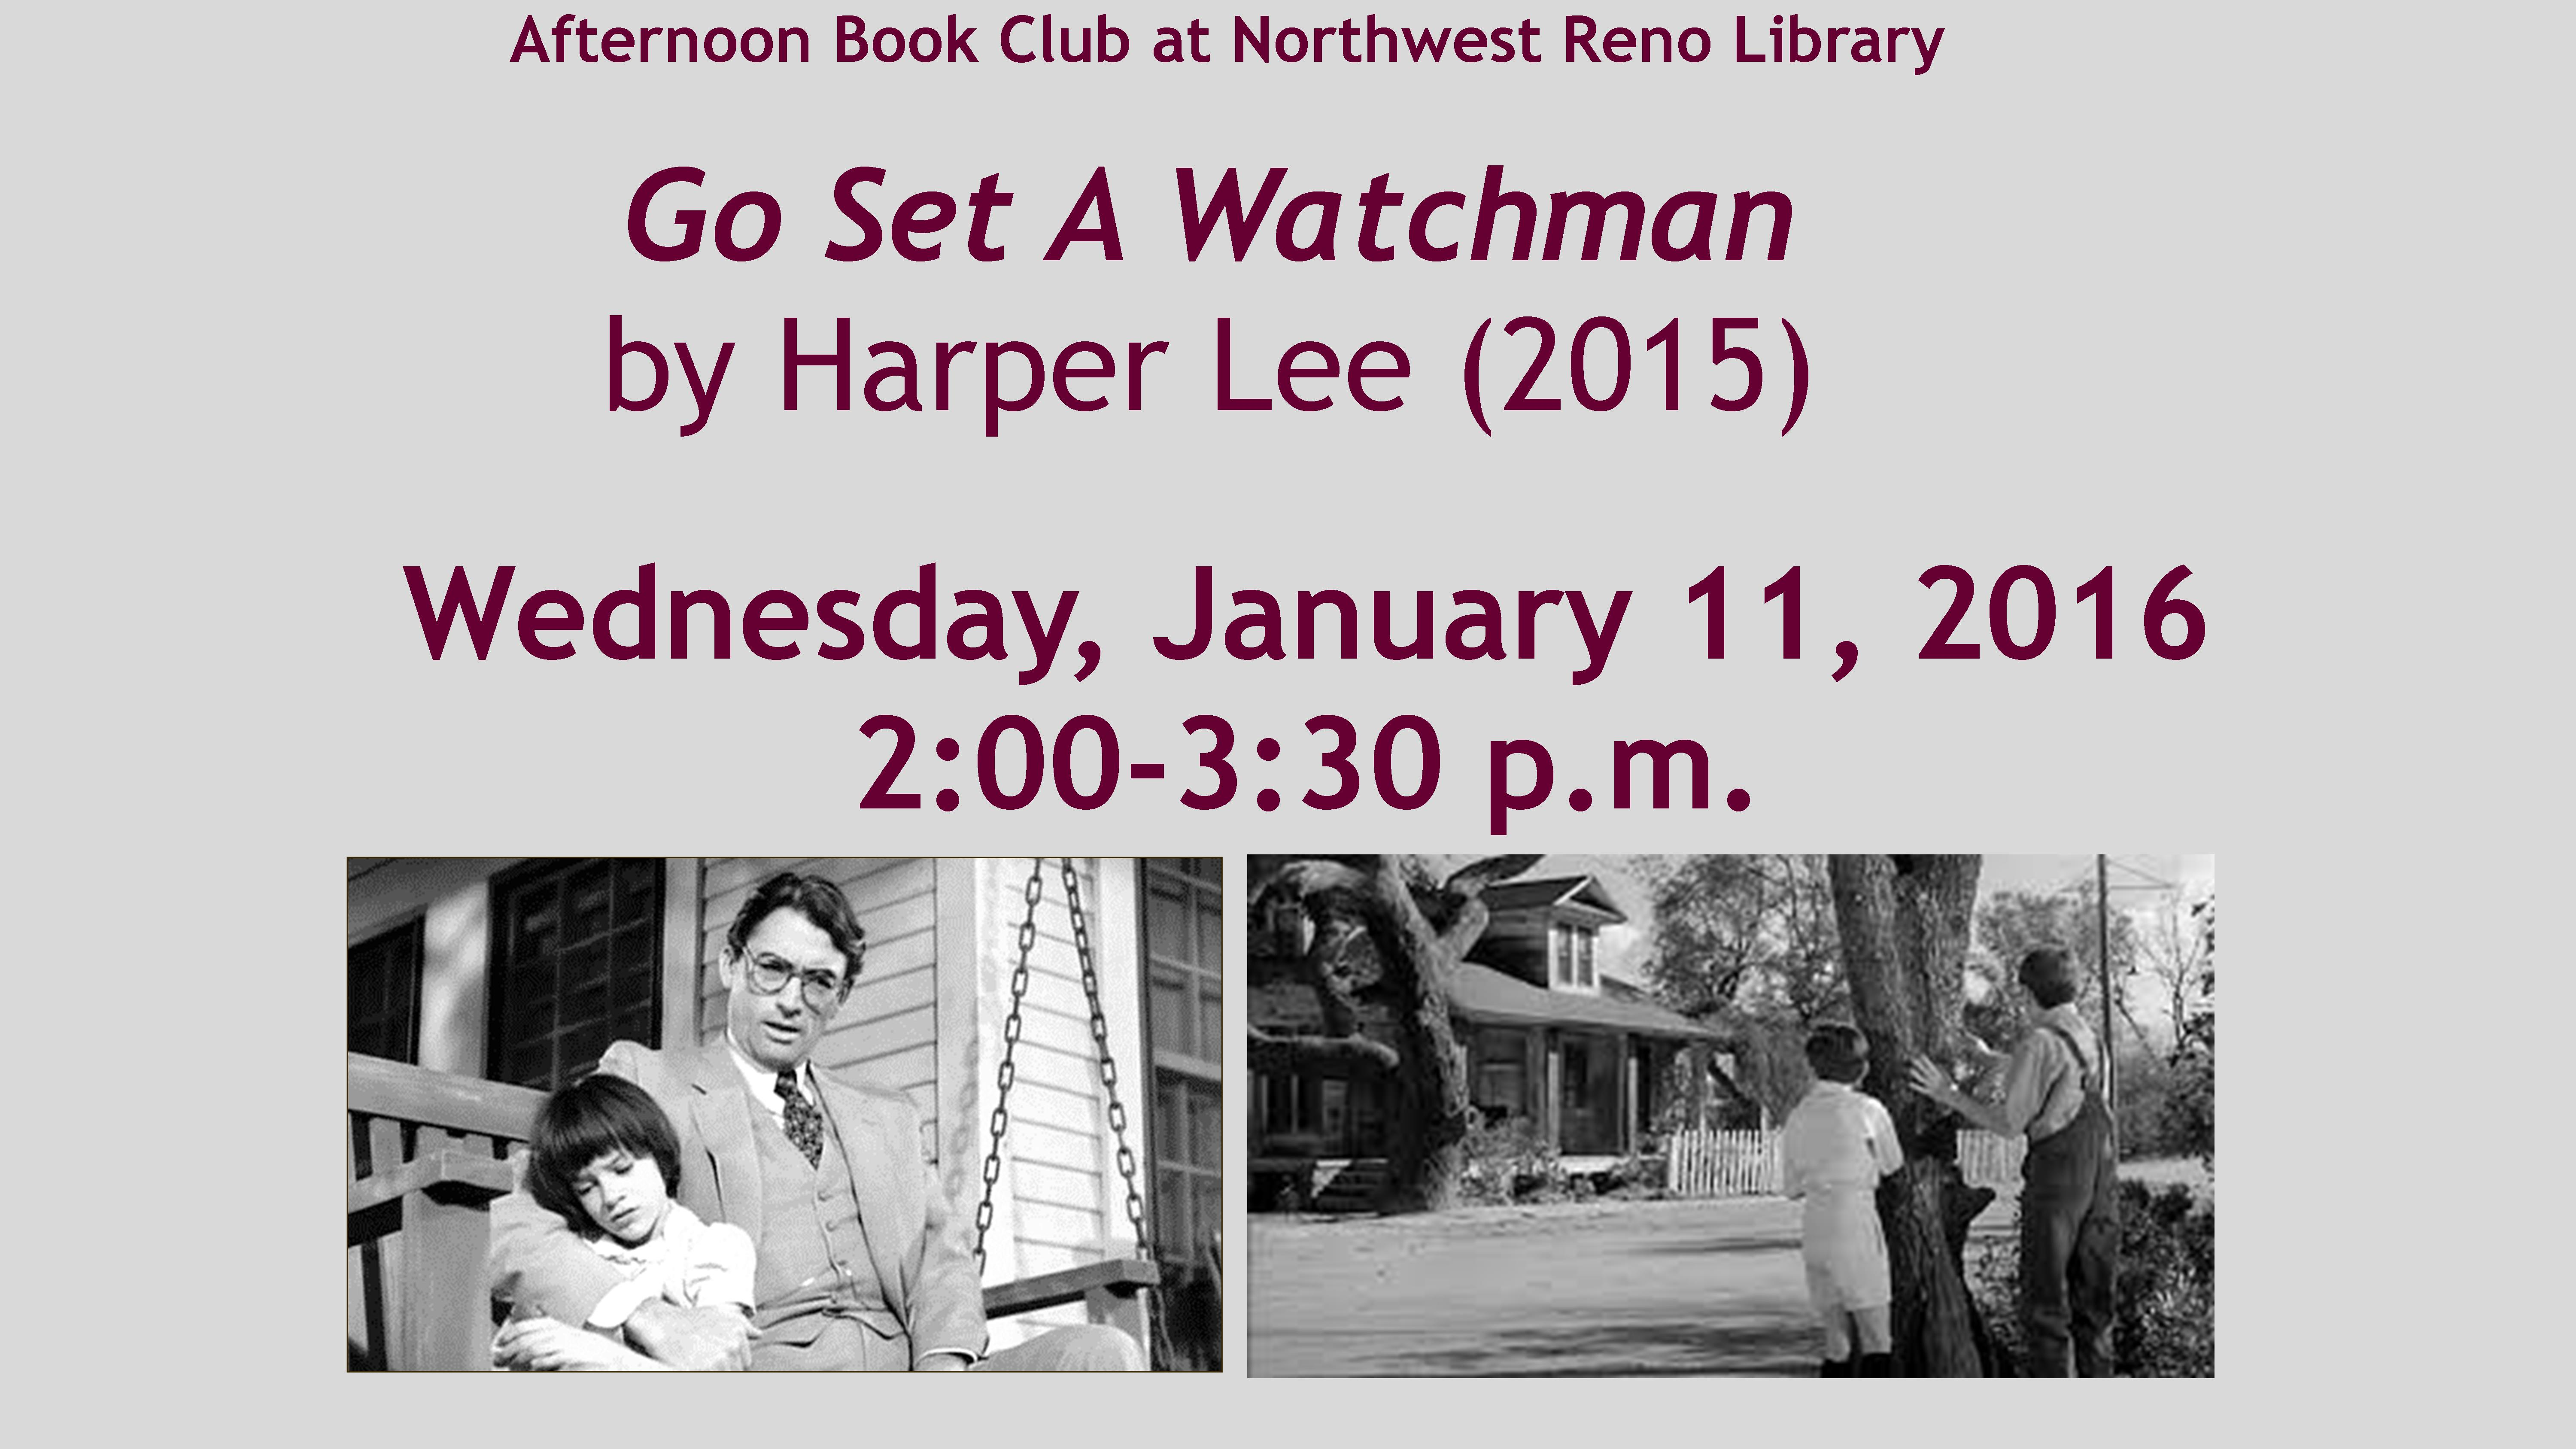 Afternoon Book Club-Northwest Reno Library